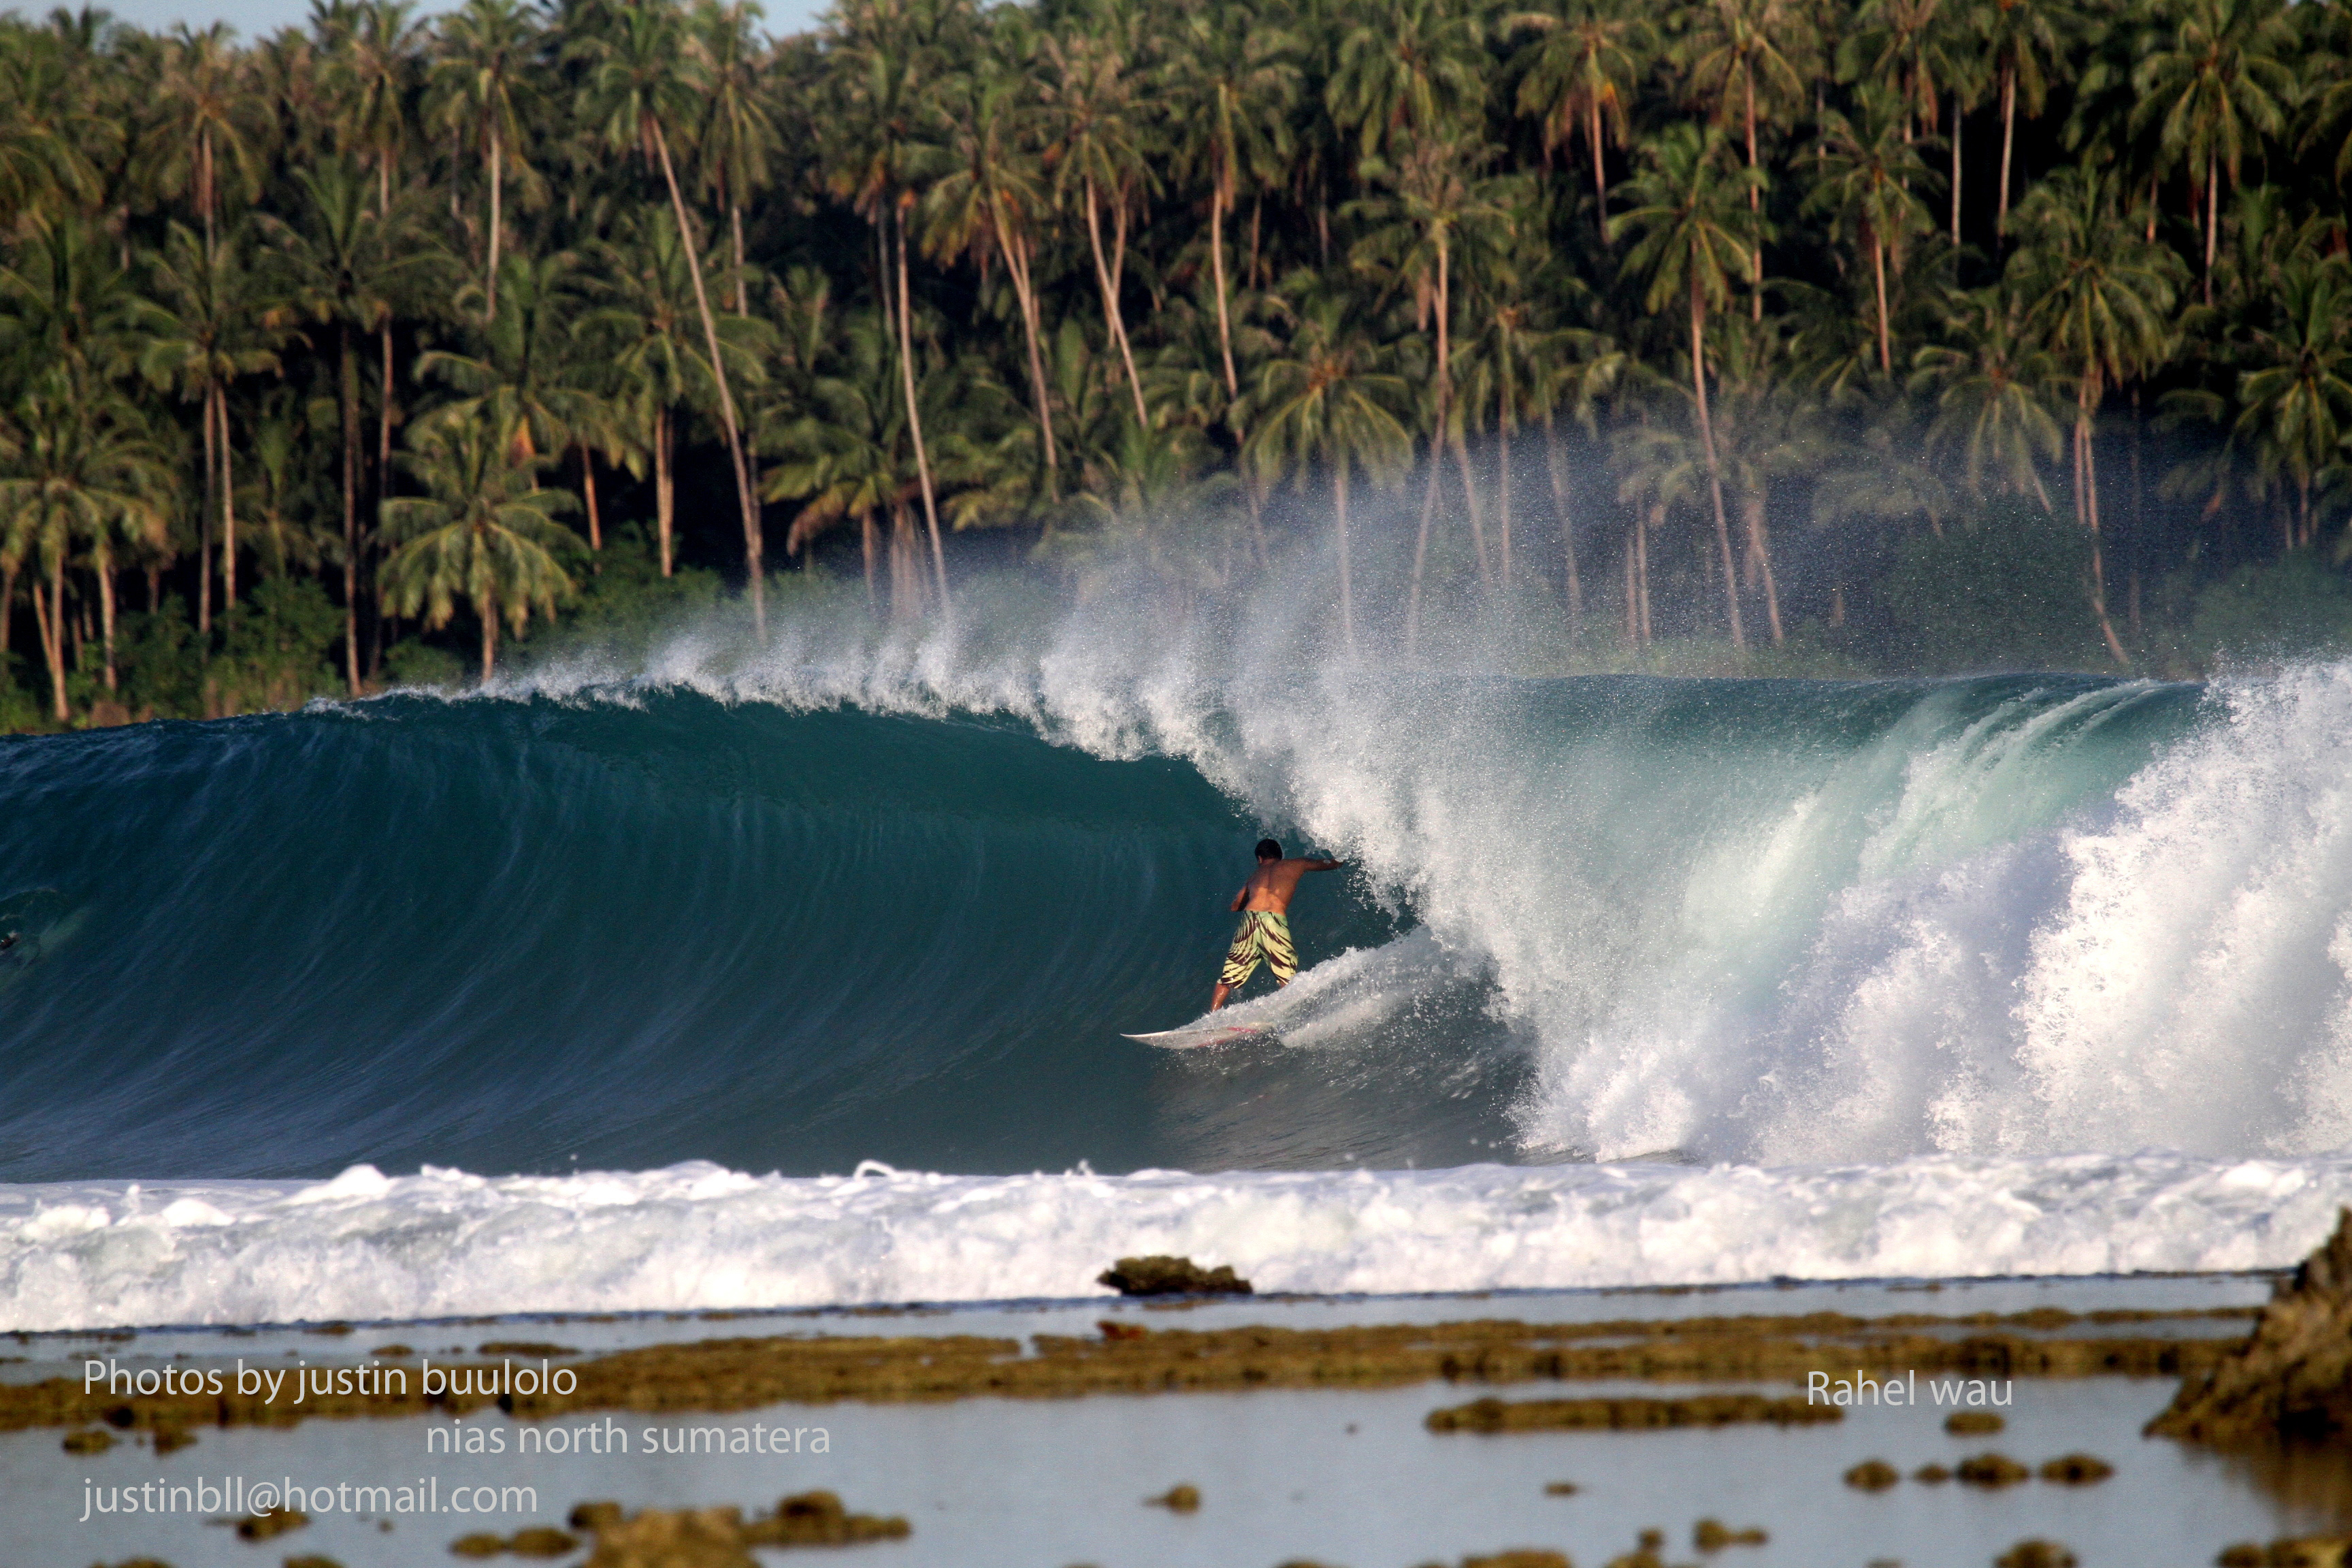 Marlyntonias Nias Paradise Is Waiting For You